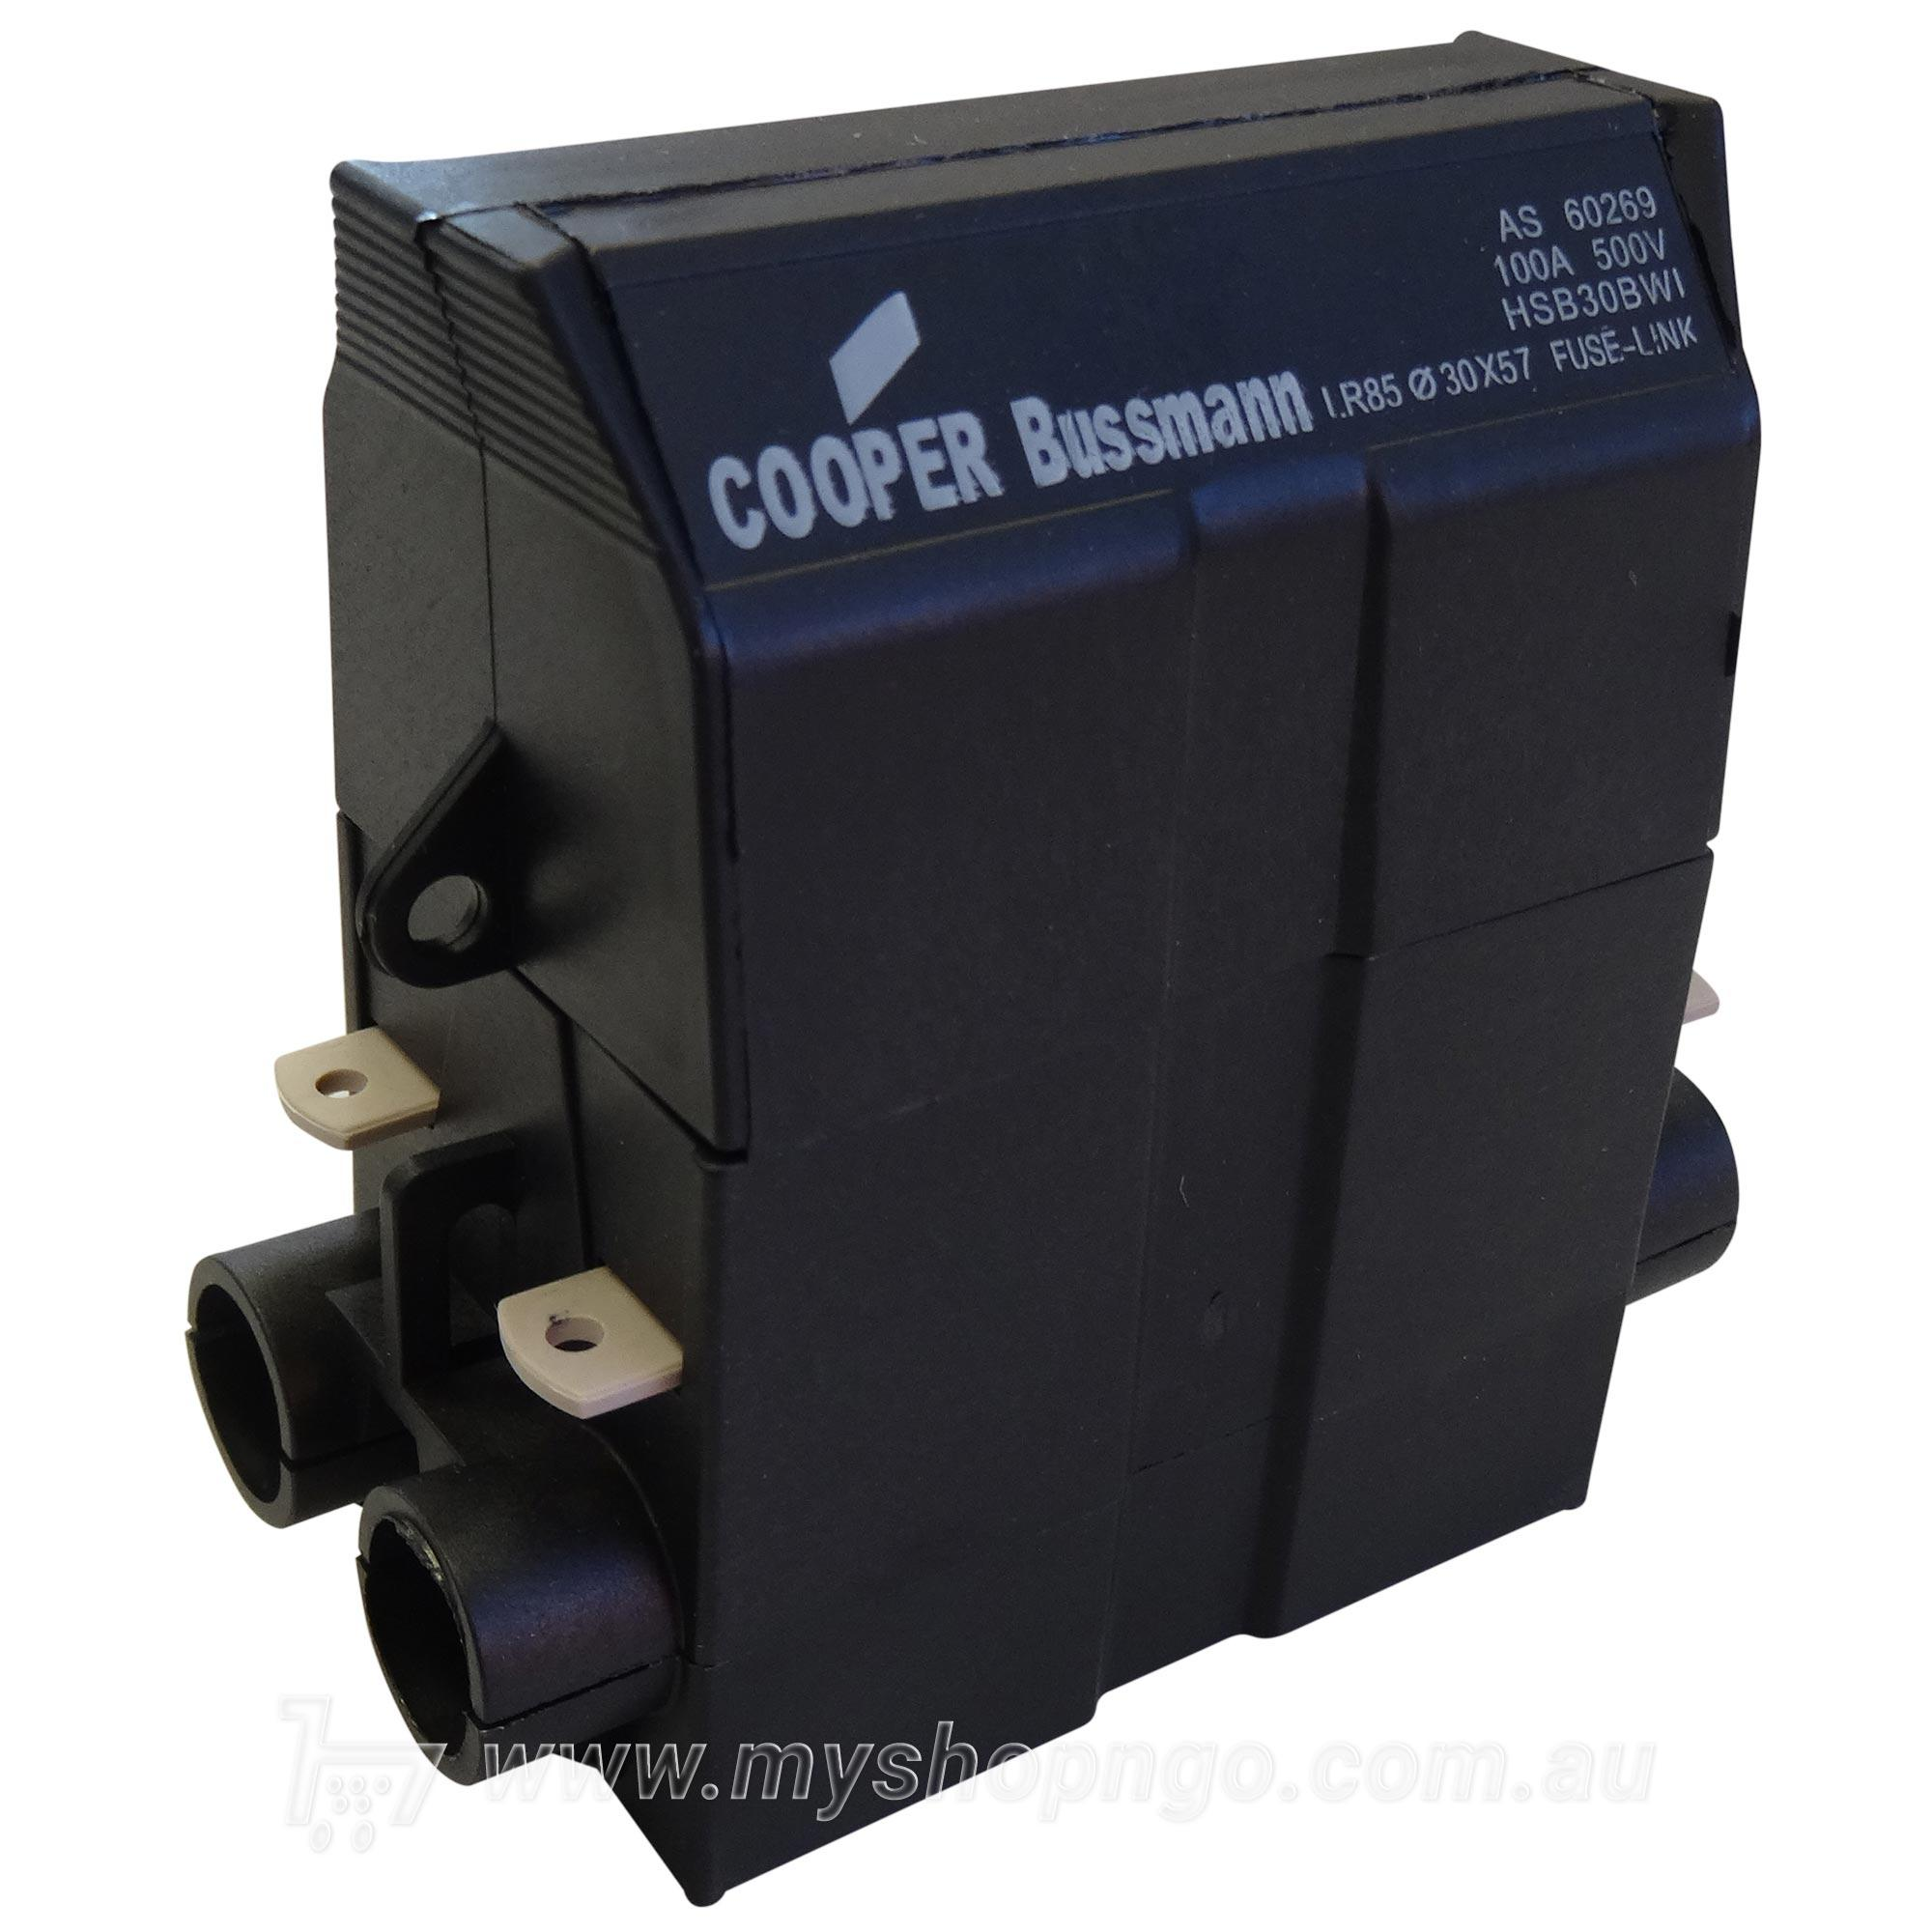 Cooper Bussmann HSB30BWI House Service Fuse Holder 100AMP. Touch to zoom